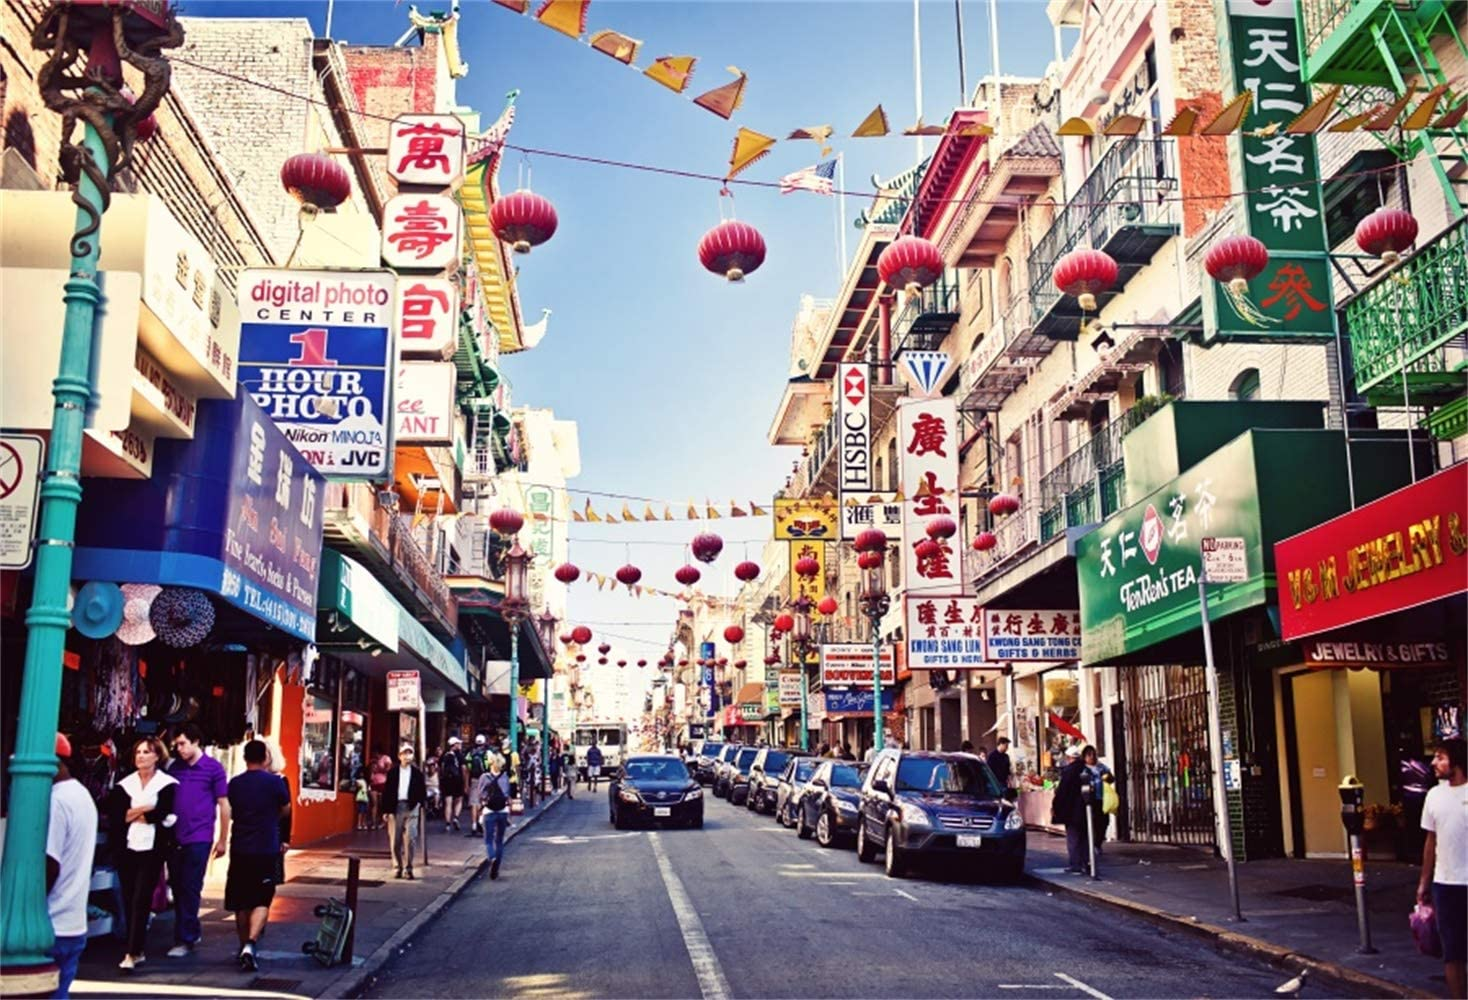 Laeacco 10x6.5ft Chinatown District Vinyl Photography Background American City Backdrop Various Chinese Style Stores Vintage Personal Portraits Film Shoot Video Studio San Francisco Streetscape